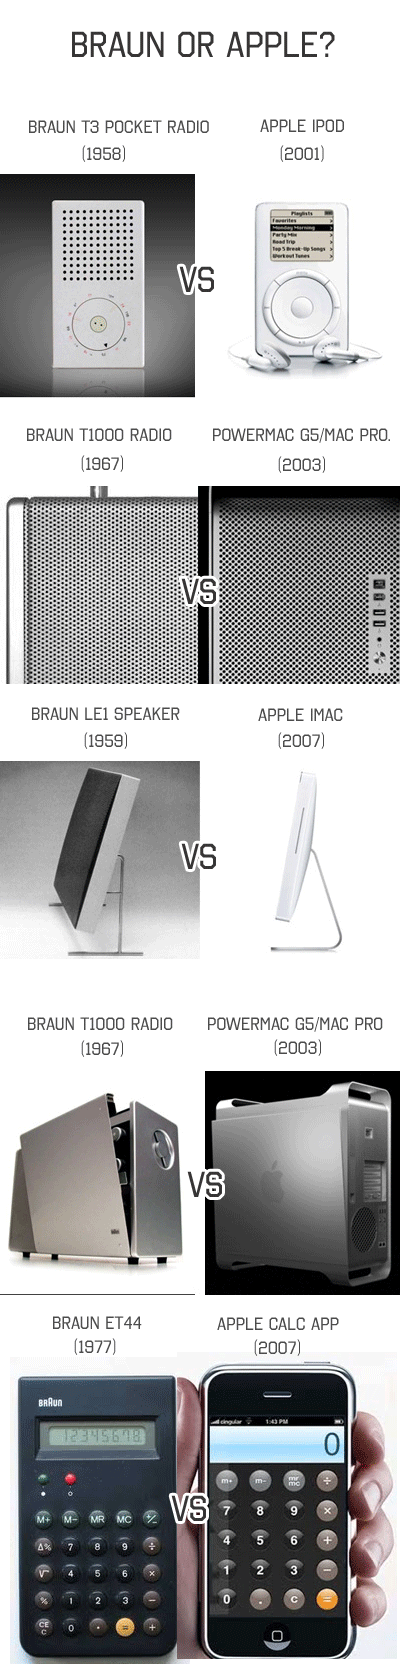 Similarity of design between Braun and Apple